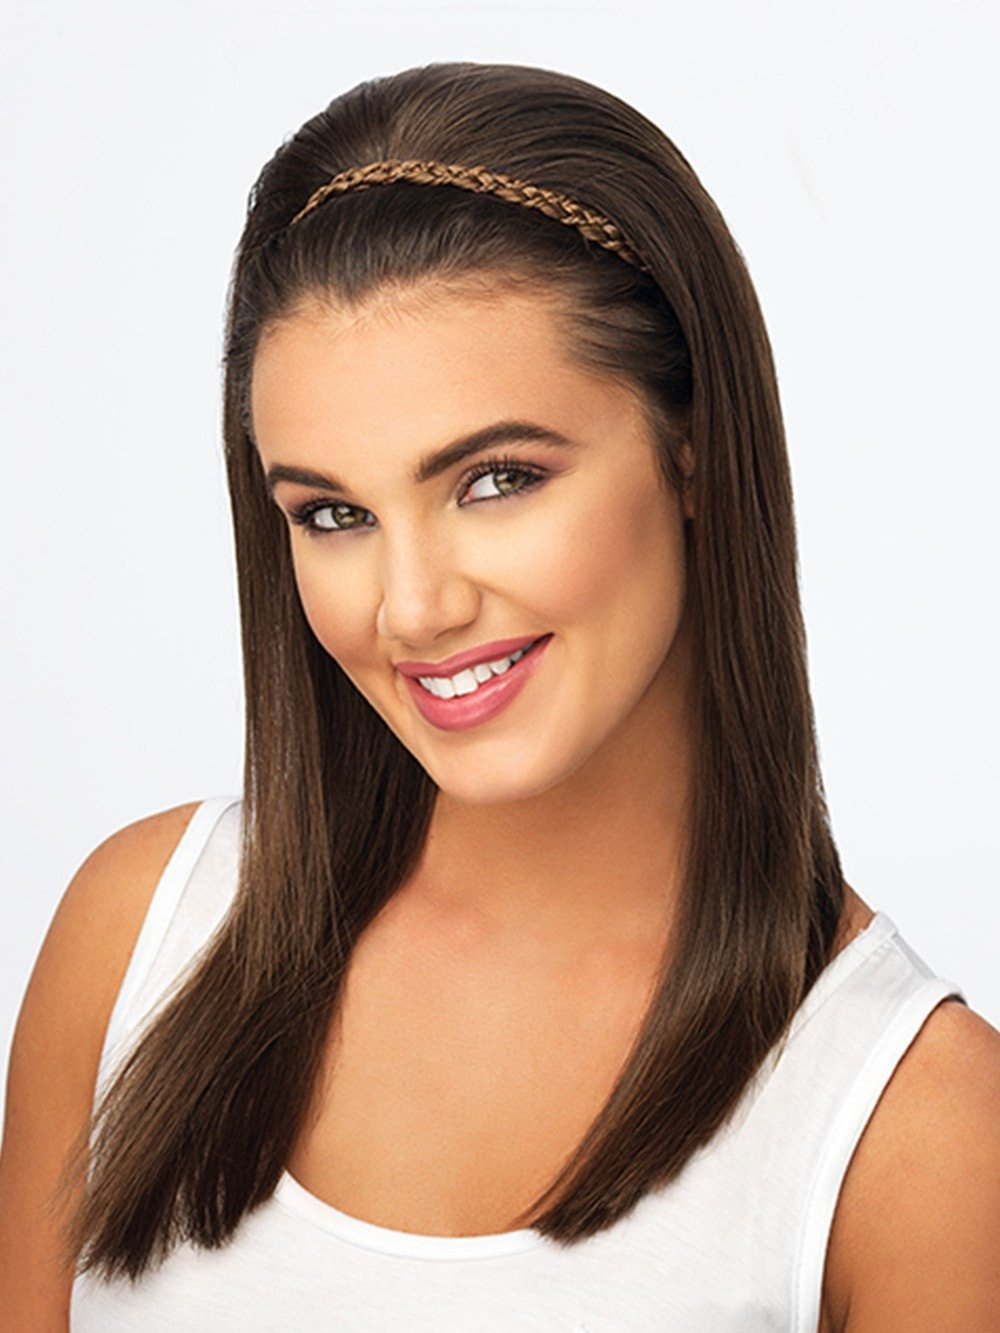 DOUBLE BRAID HEADBAND by POP by hairdo in R6/30H CHOCOLATE COPPER | Dark Medium Brown Evenly Blended with Medium Auburn Highlights